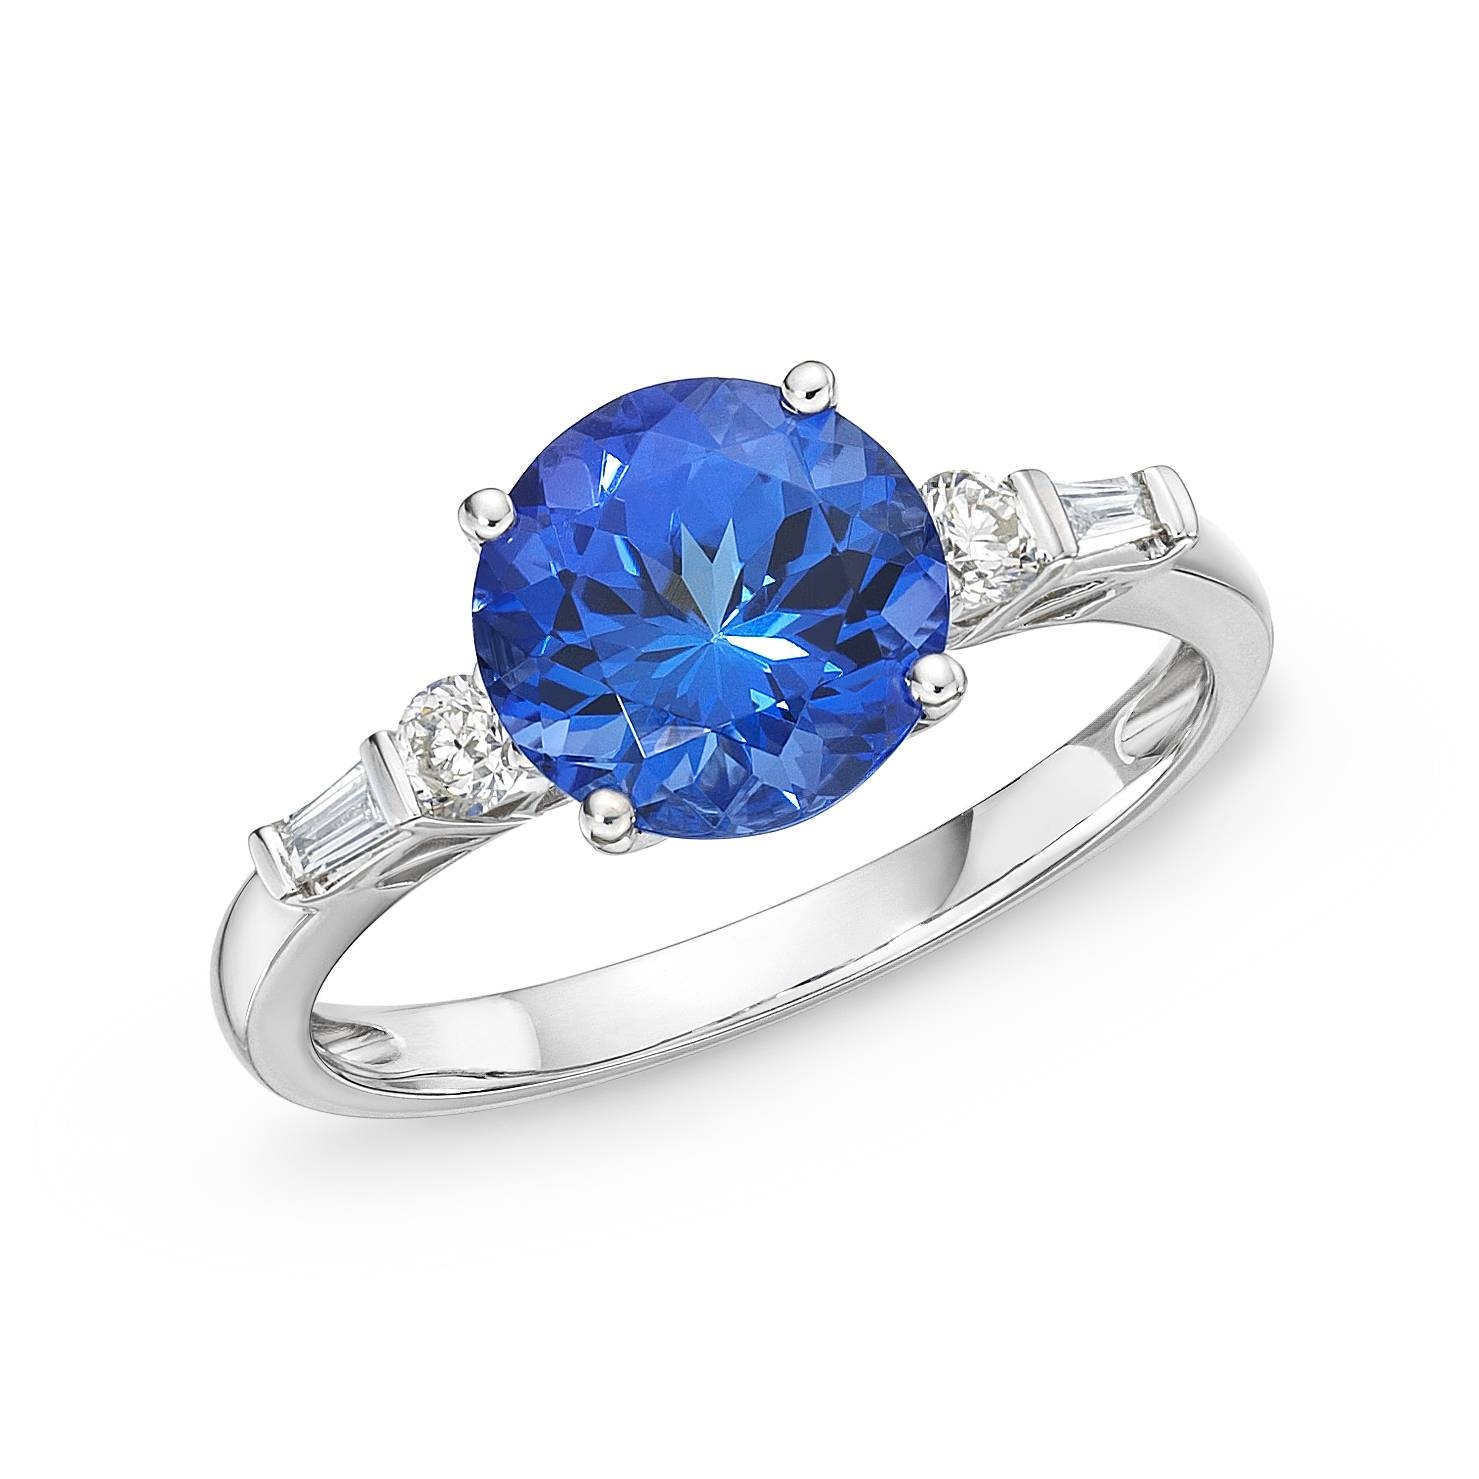 3.34 Ct Tiffany Tanzanite & Diamond Ring : Richland Gemstones Within Tanzanite Engagement Rings (Gallery 6 of 15)